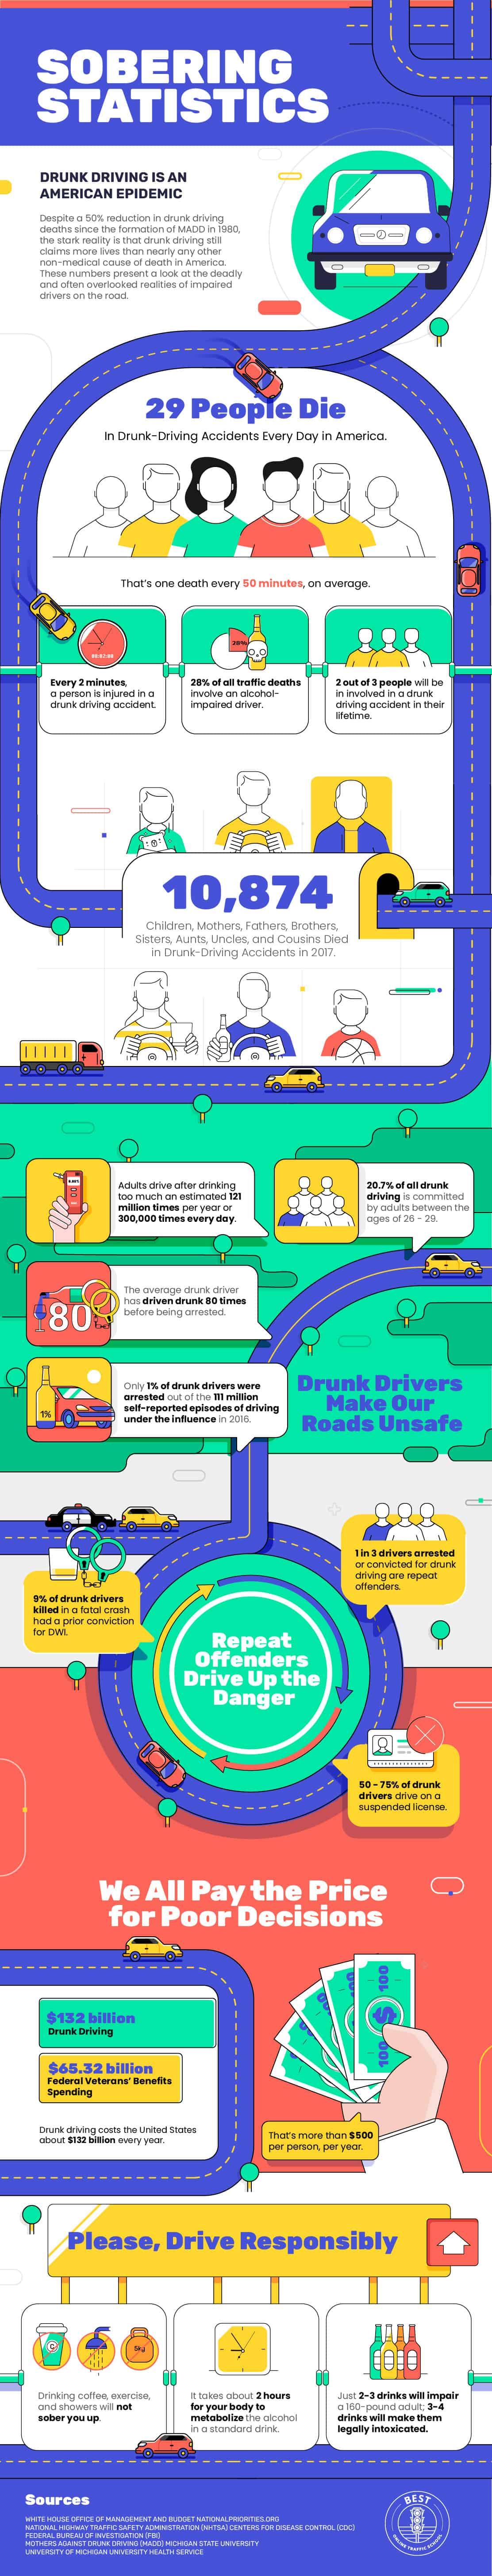 Statistics of a Dangerous, Life-Threatening Epidemic: Drunk Driving - Infographic